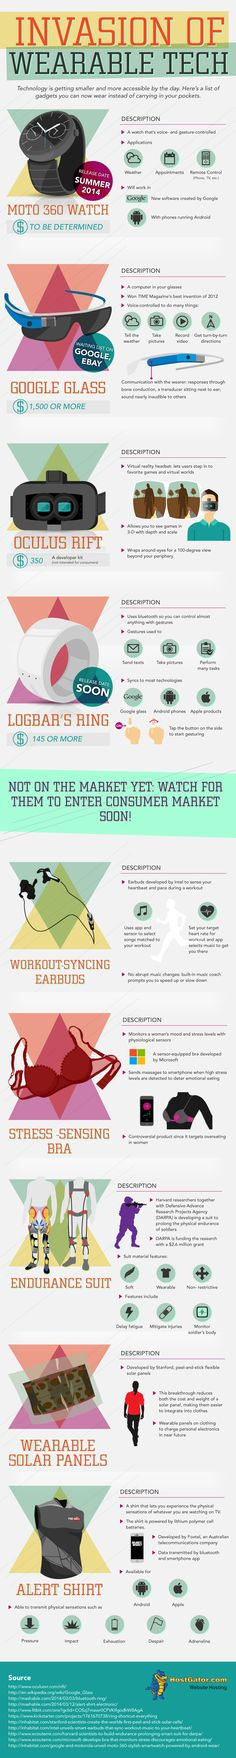 Presumtious title but interesting #infographic: Invasion of Wearable Tech #WearableTech #Technology